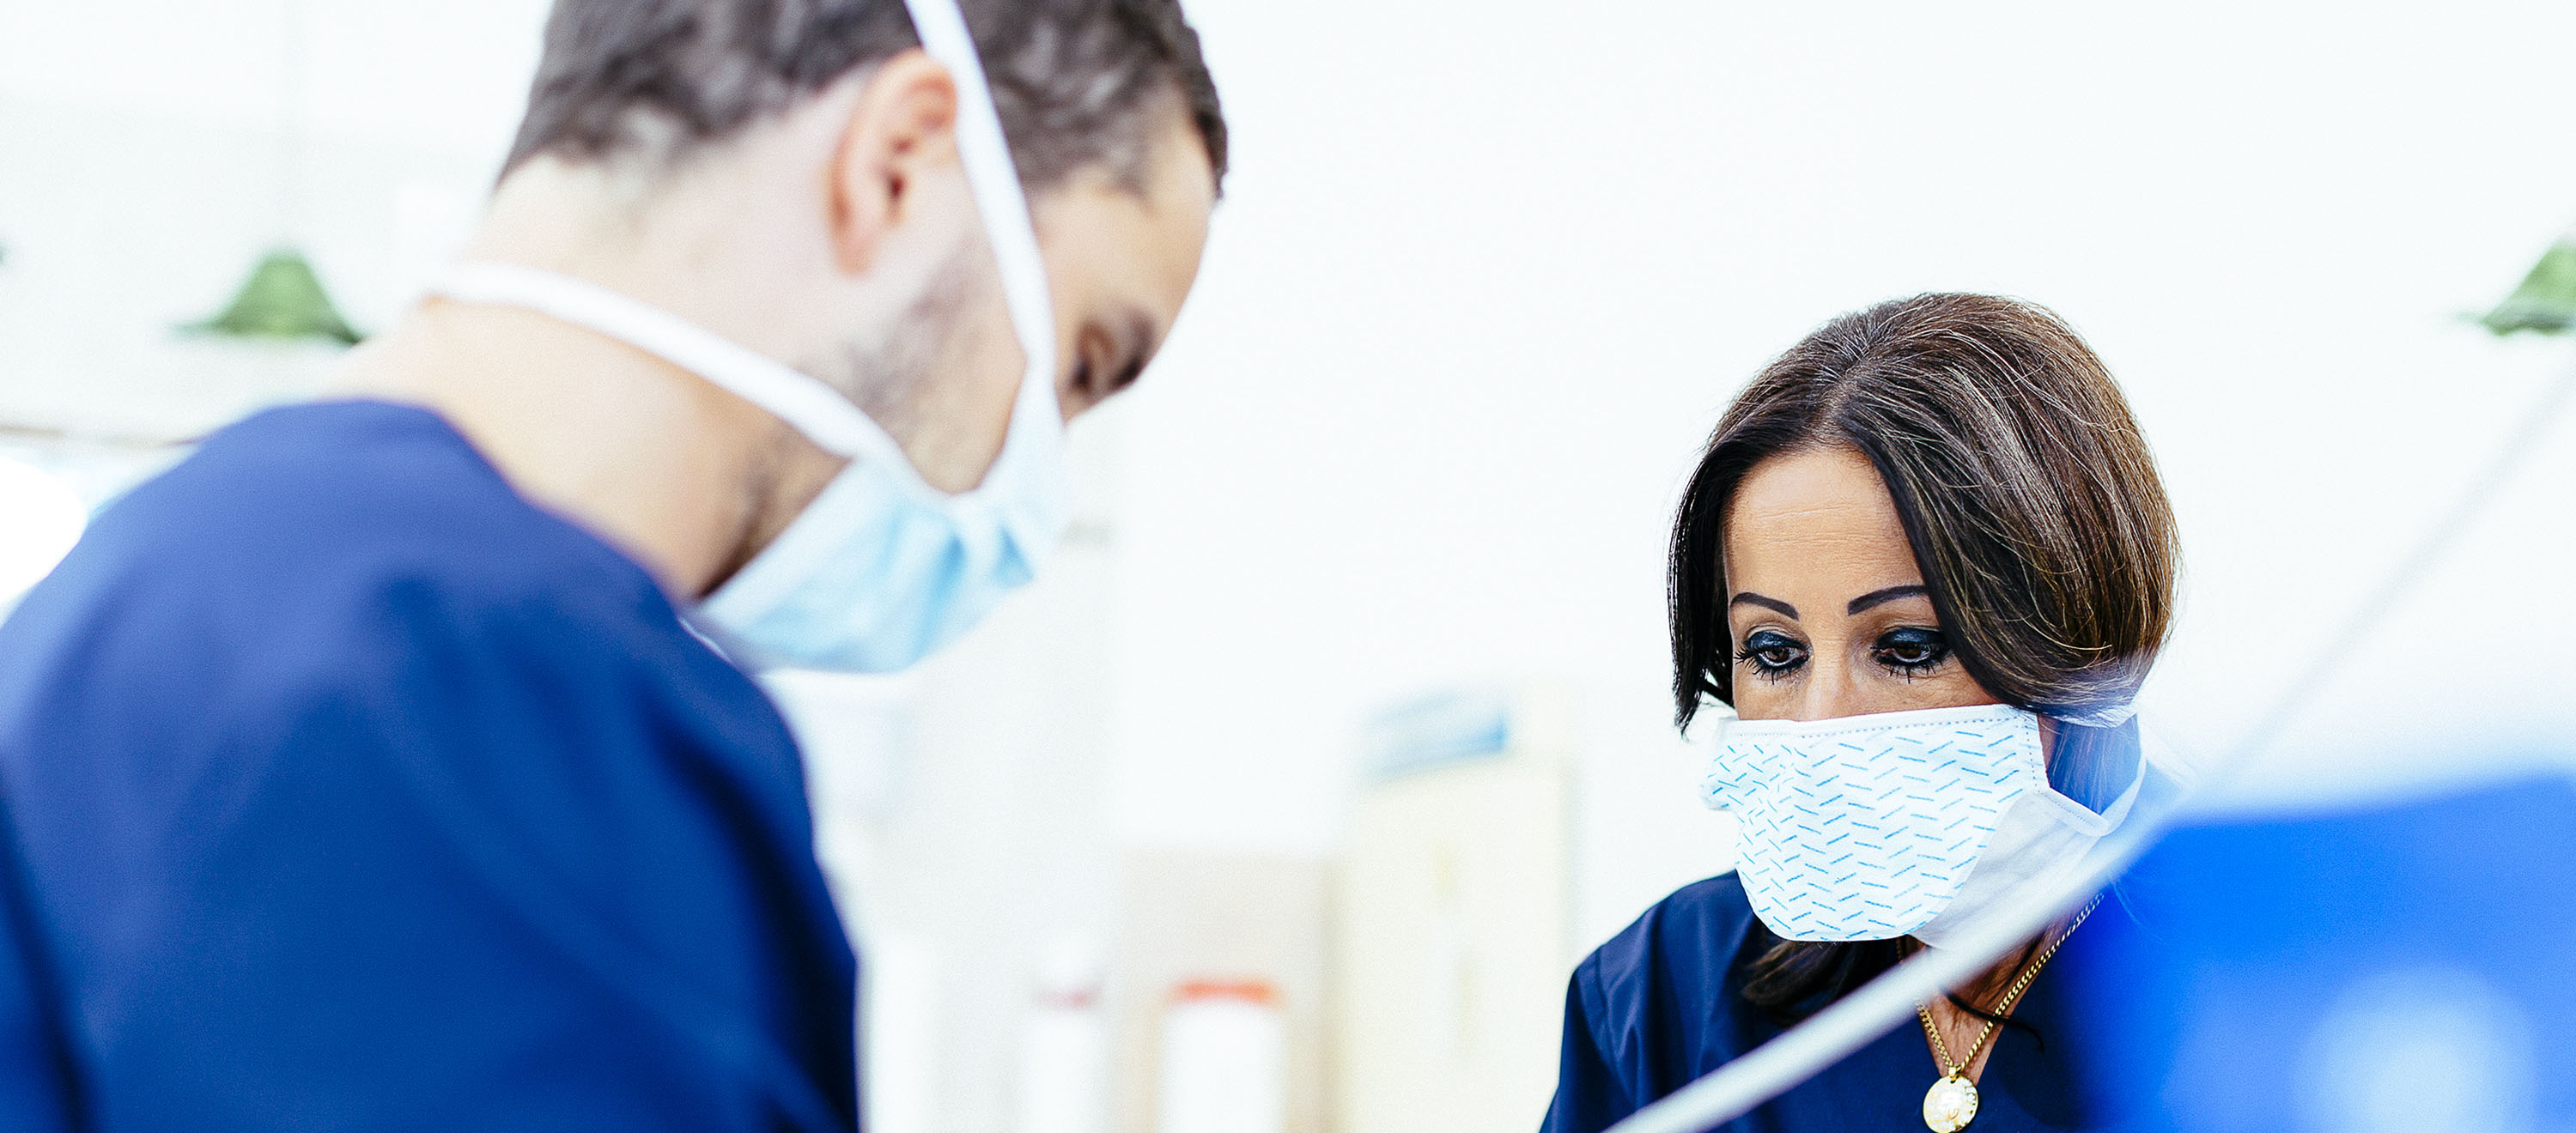 Root treatment at the dental clinic in Budapest. Pain can be avoided if the dentist's instructions are observed after treatment.